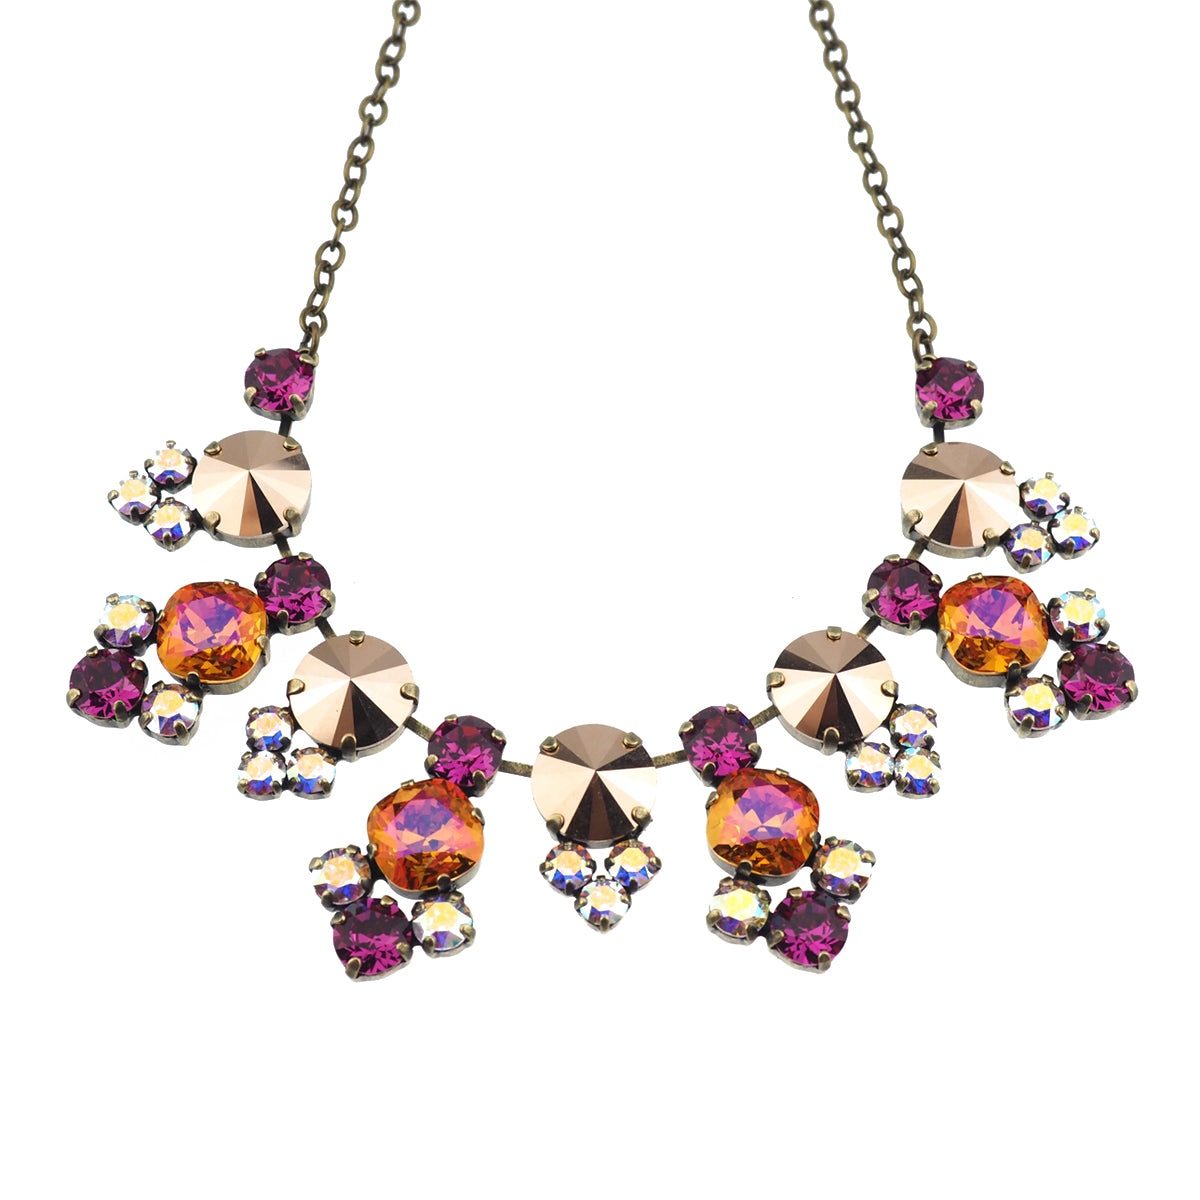 Cosmic Kiss Necklace - Astral Pink